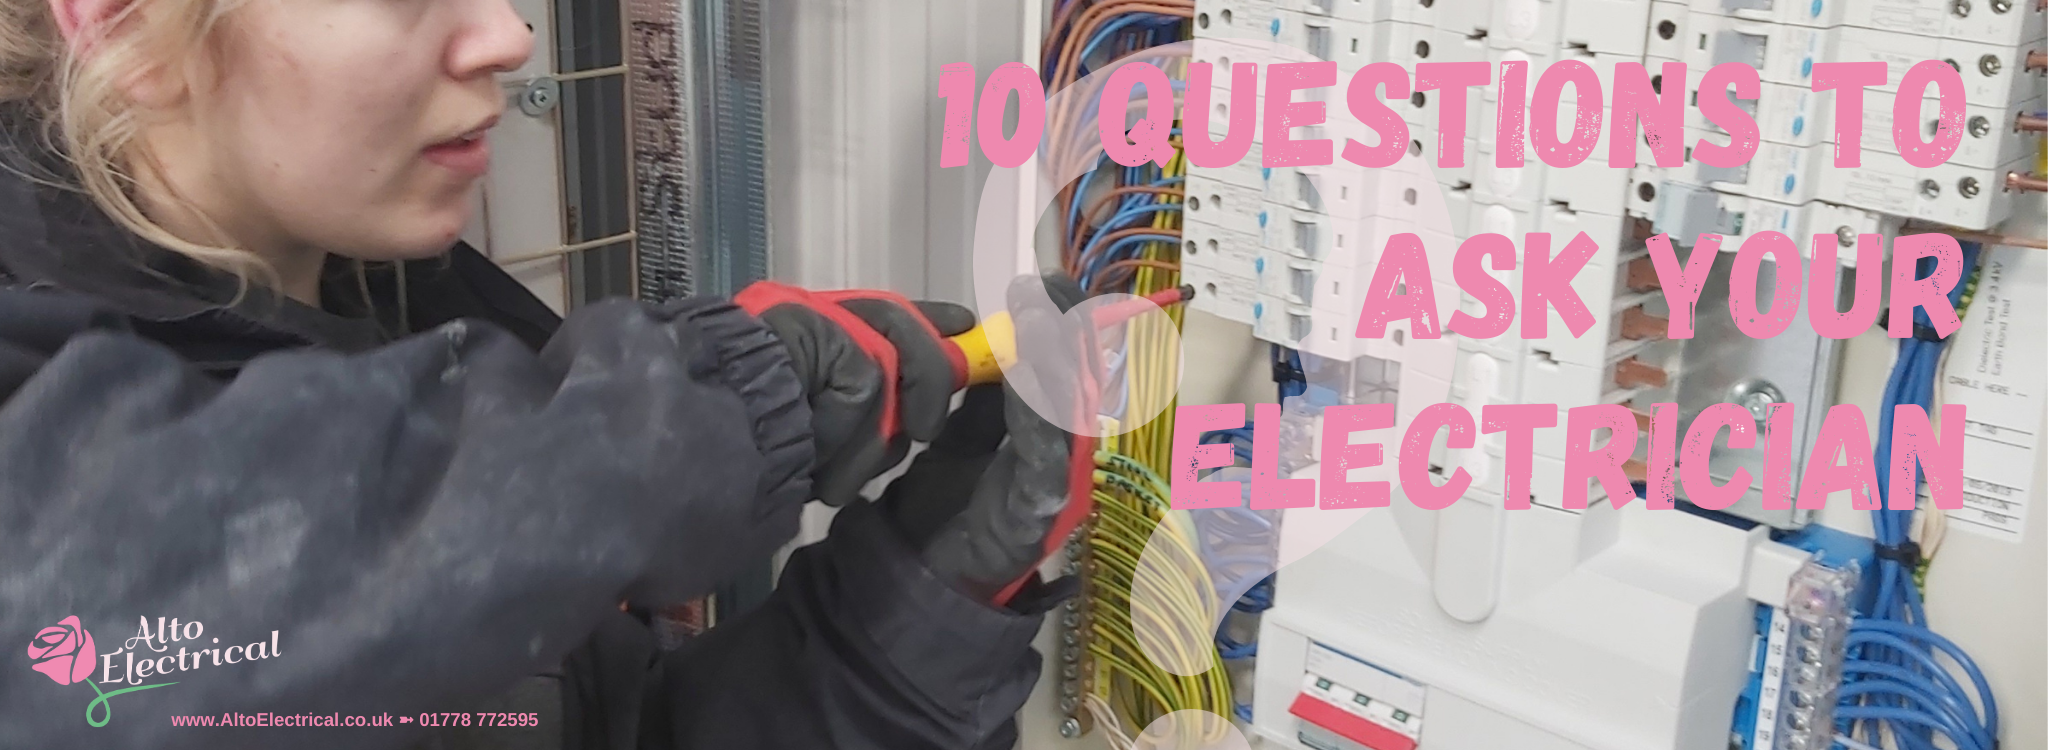 10 Questions to ask your electrician